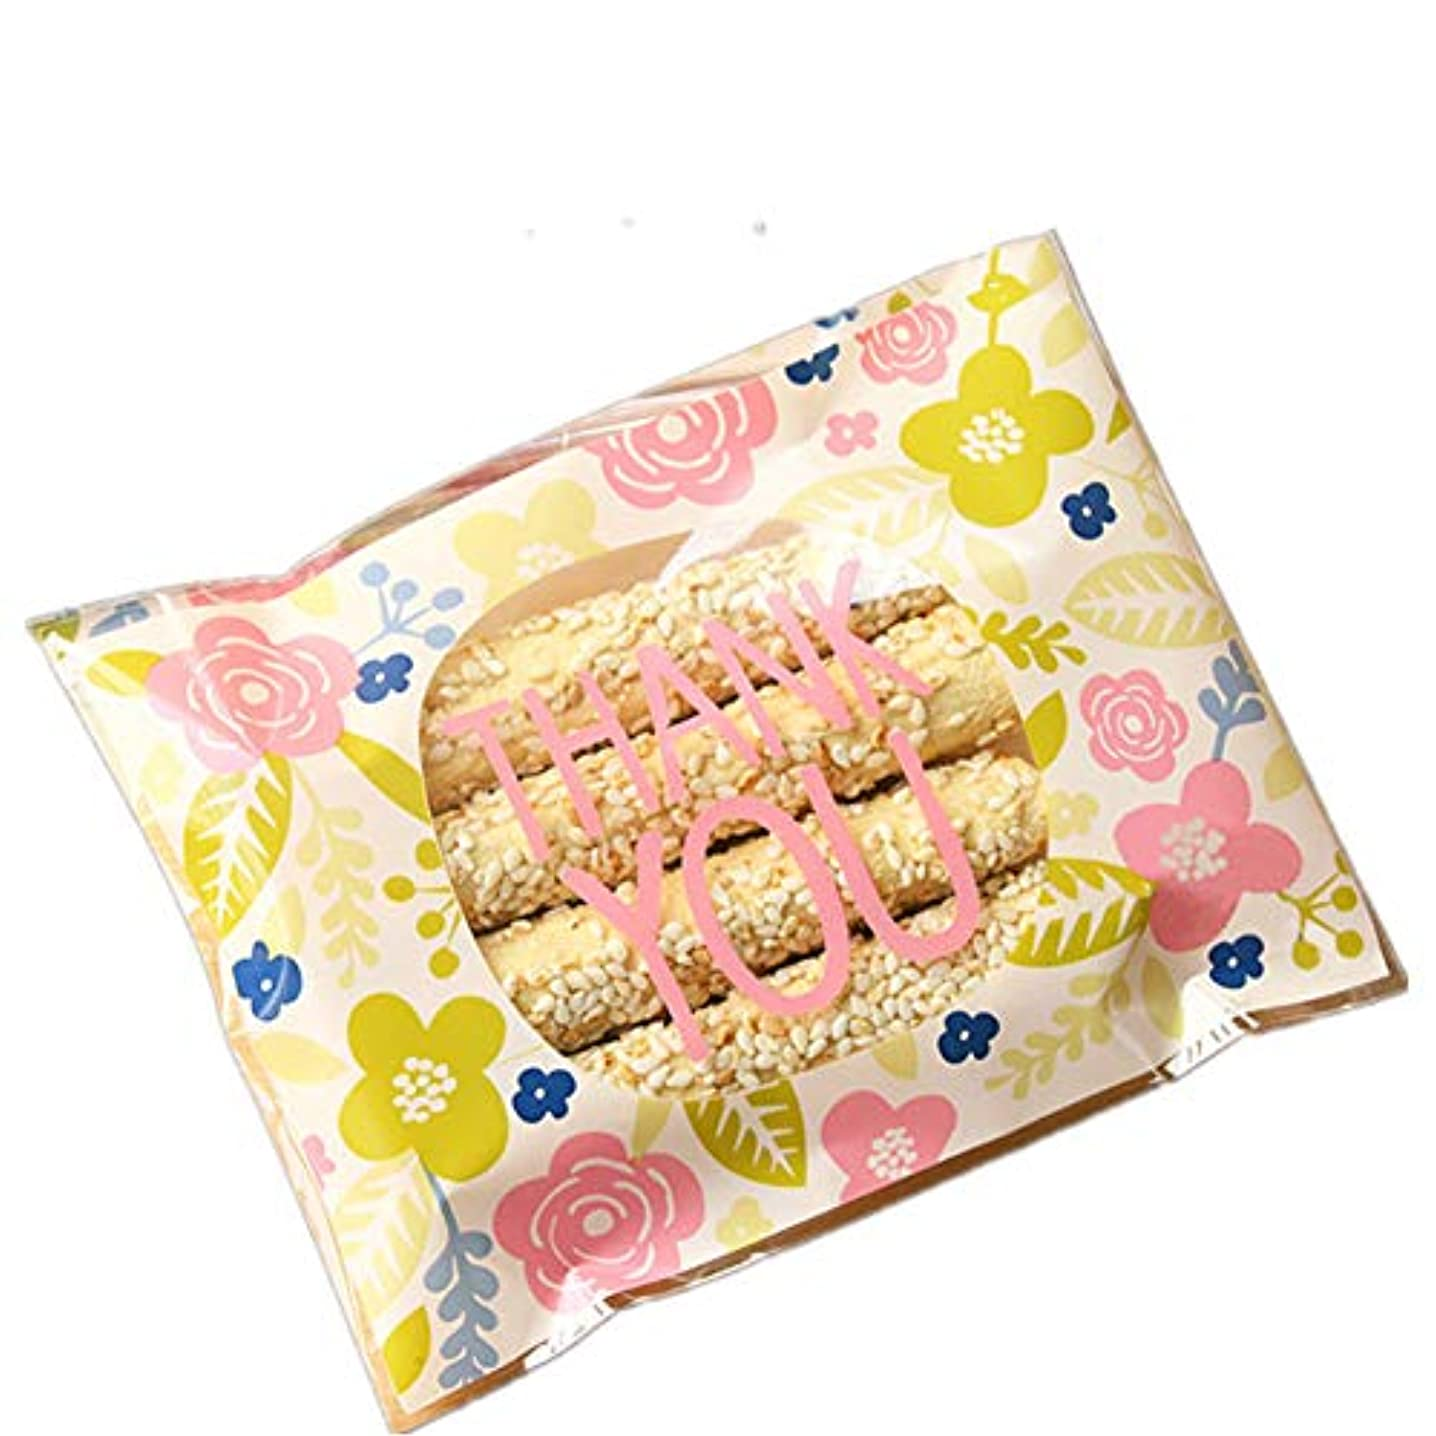 100pcs THANK YOU Treat Bags Pink Flower Cookie Bag Packaging Self-Adhesive Plastic Candy Bags for Wedding Cookie Birthday Cake Pops Gift Candy Buffet Supplies